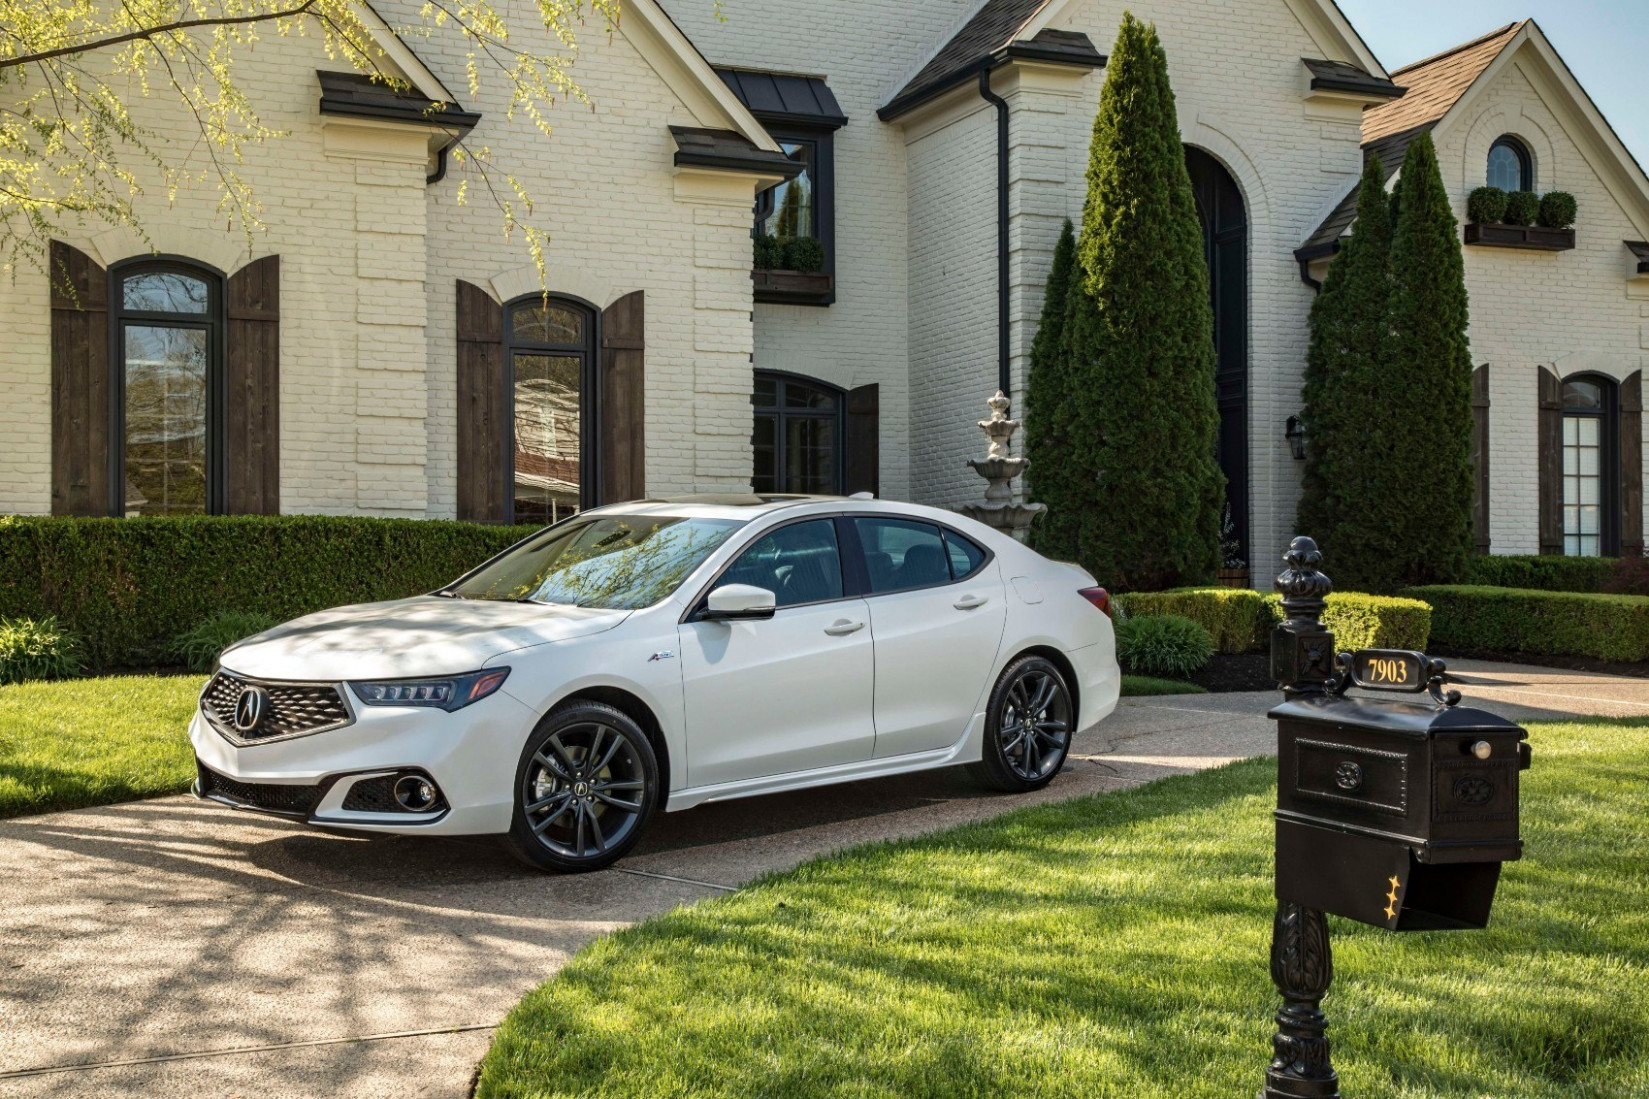 8 Acura TLX: Letting Those Colors Fly! - 2020 acura tlx v6 a-spec